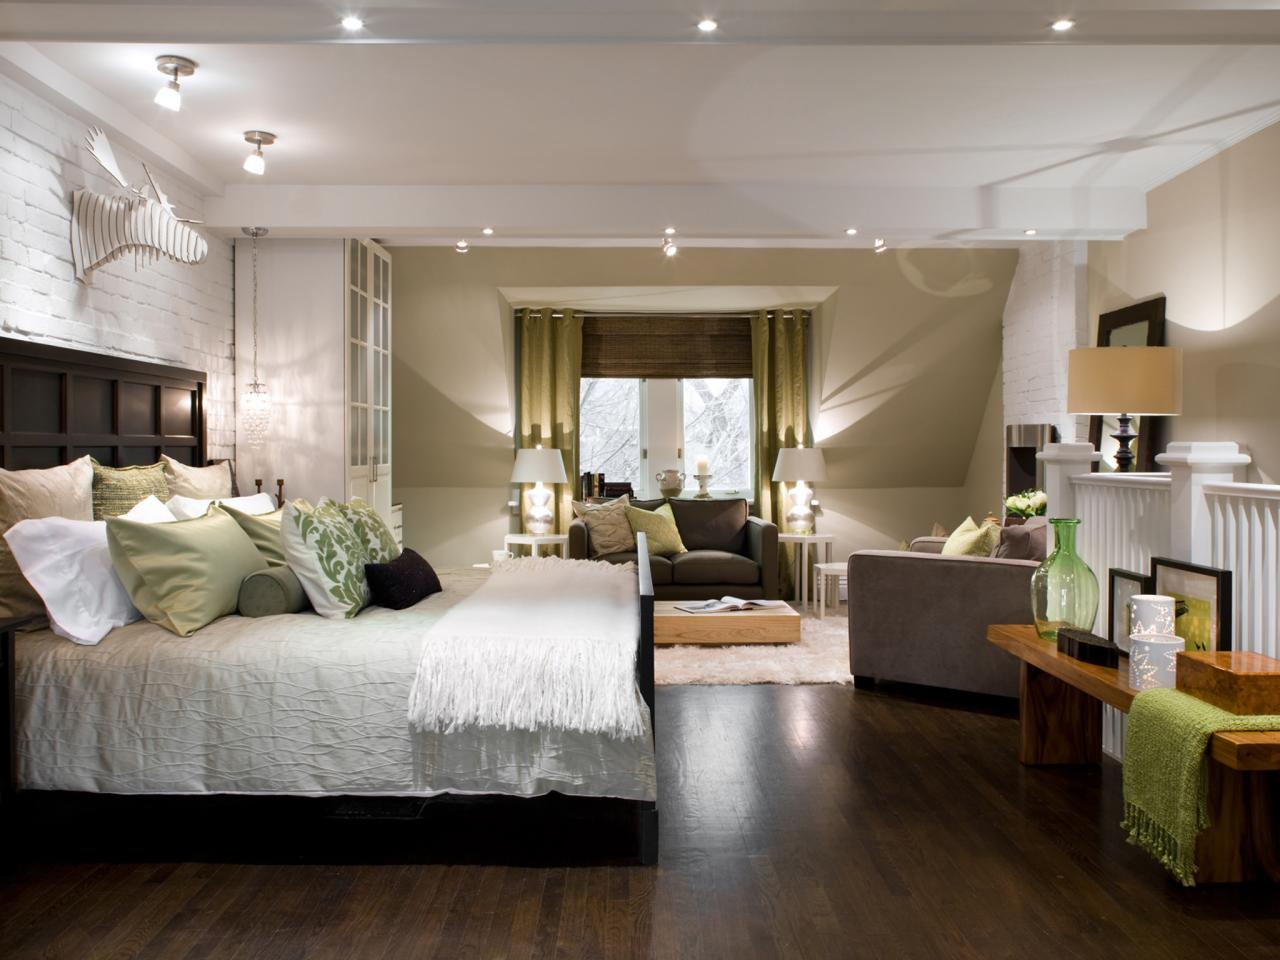 bedroom lights bedroom lighting ideas and styles BSTZGQP